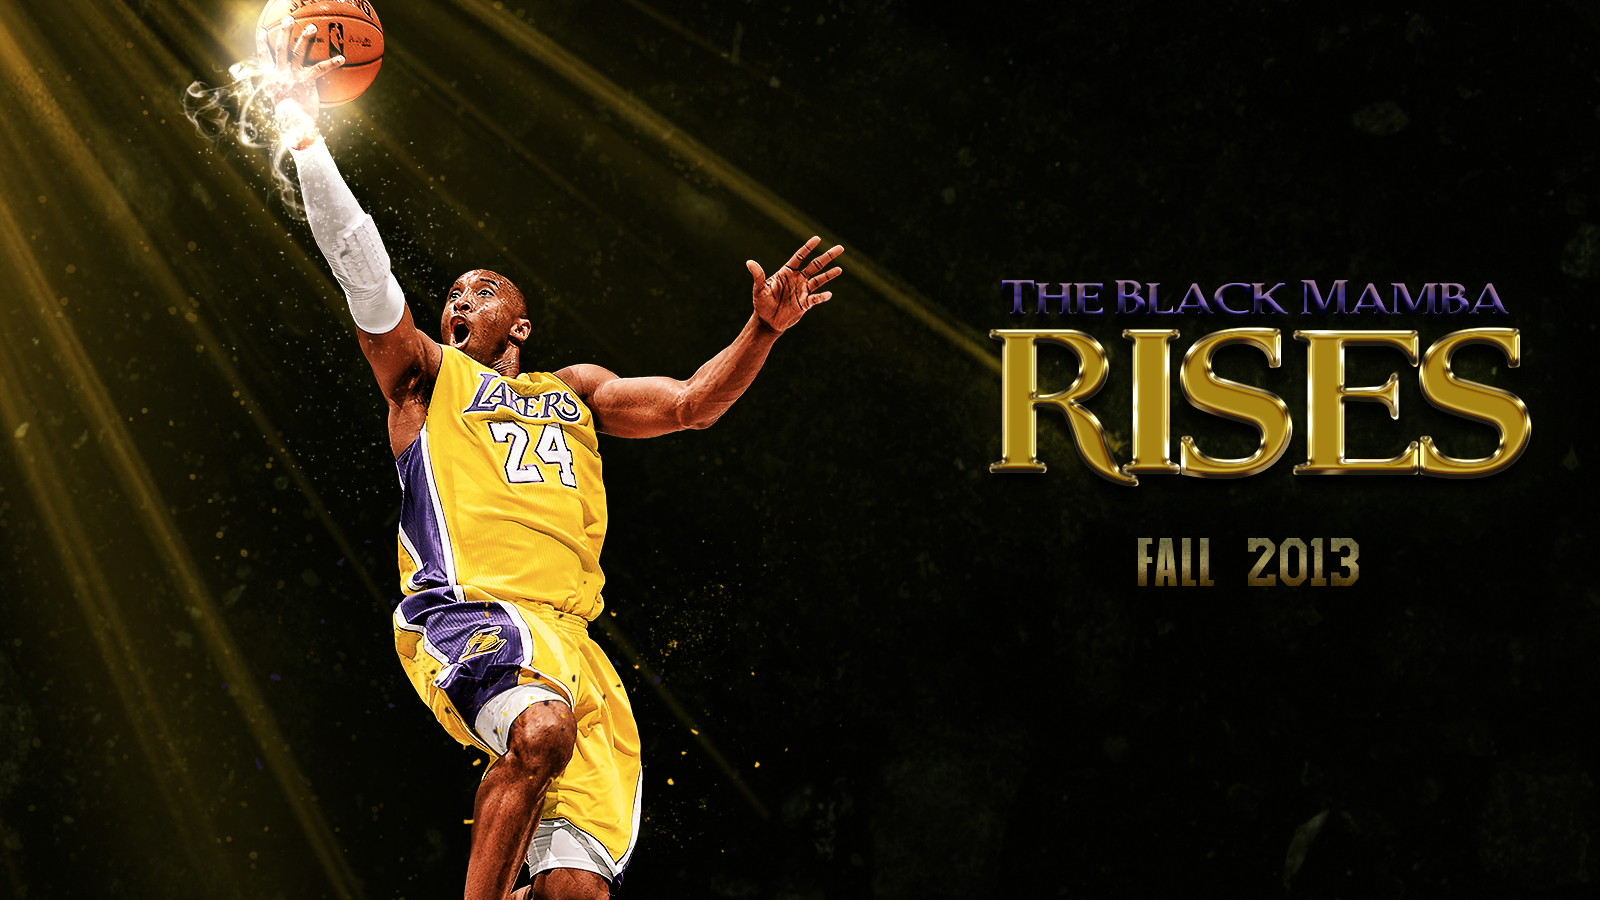 Black Mamba Rises Wallpaper By Chronoxiong On Deviantart